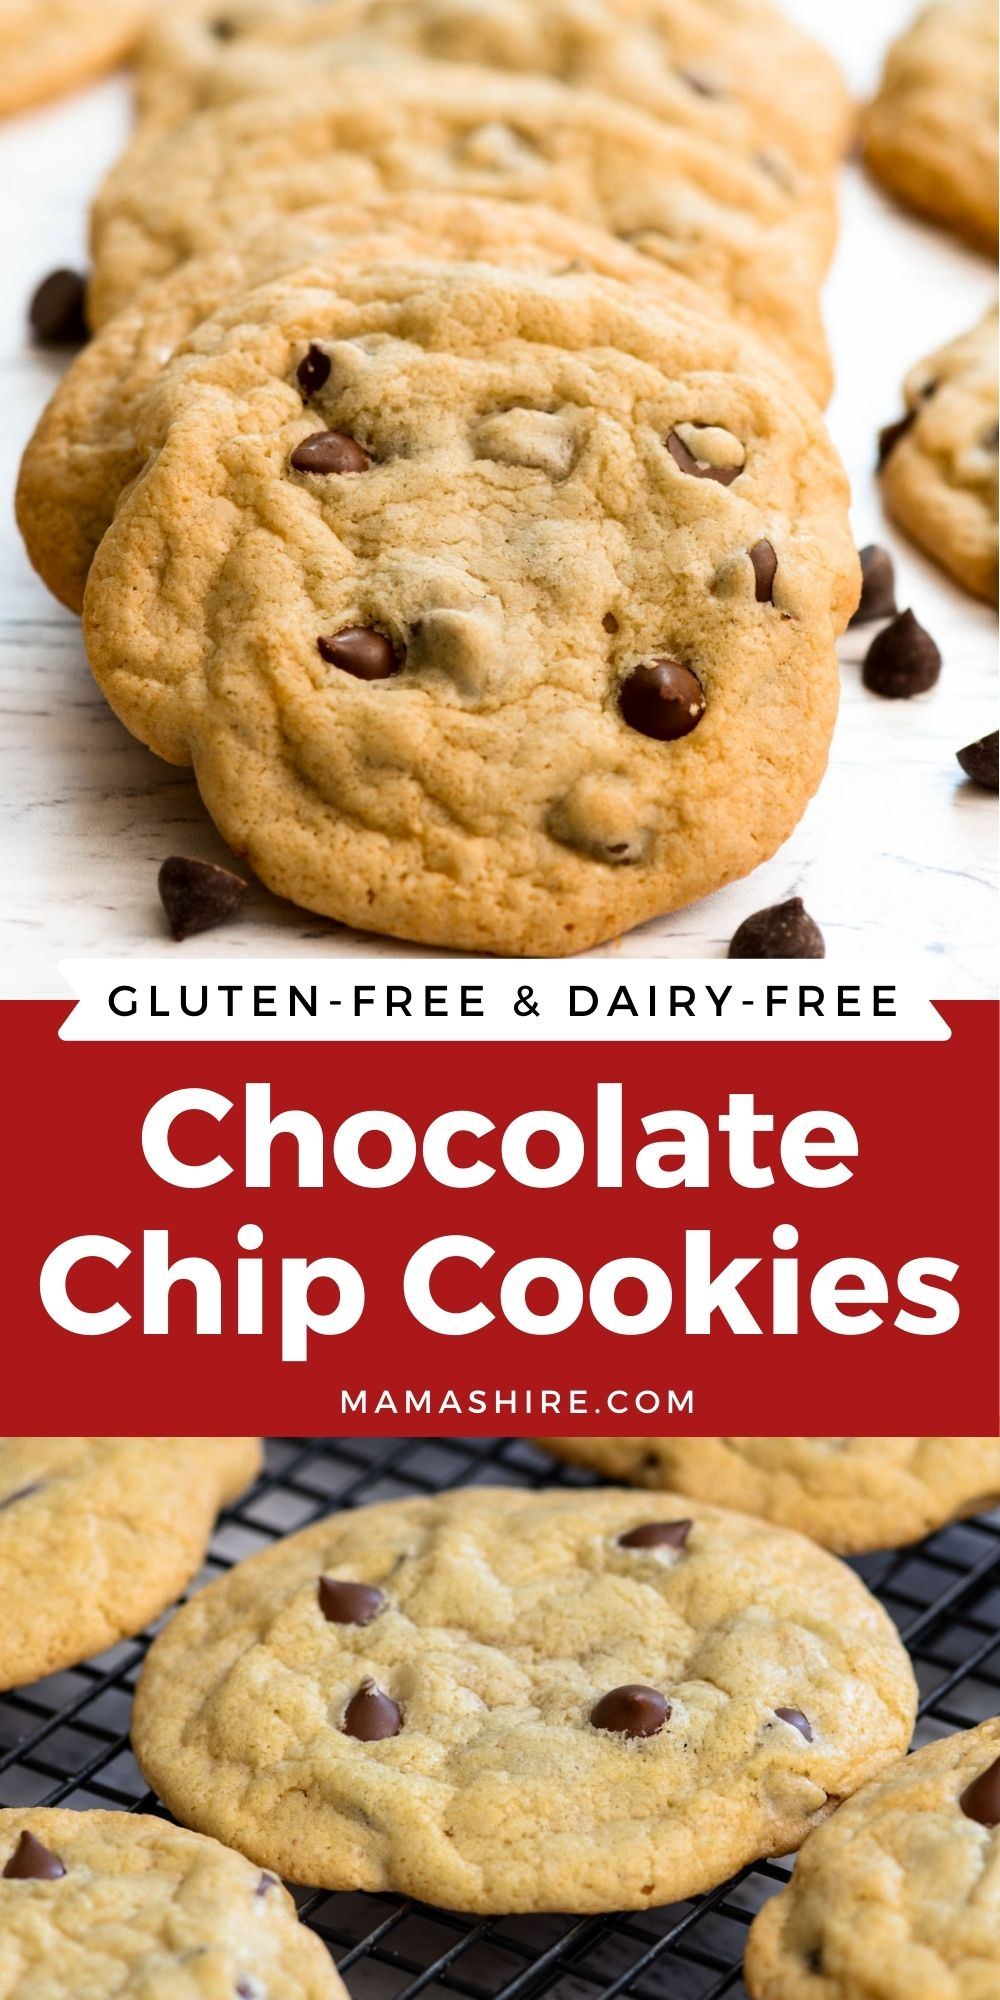 The best gluten-free chocolate chip cookies fresh from the oven.